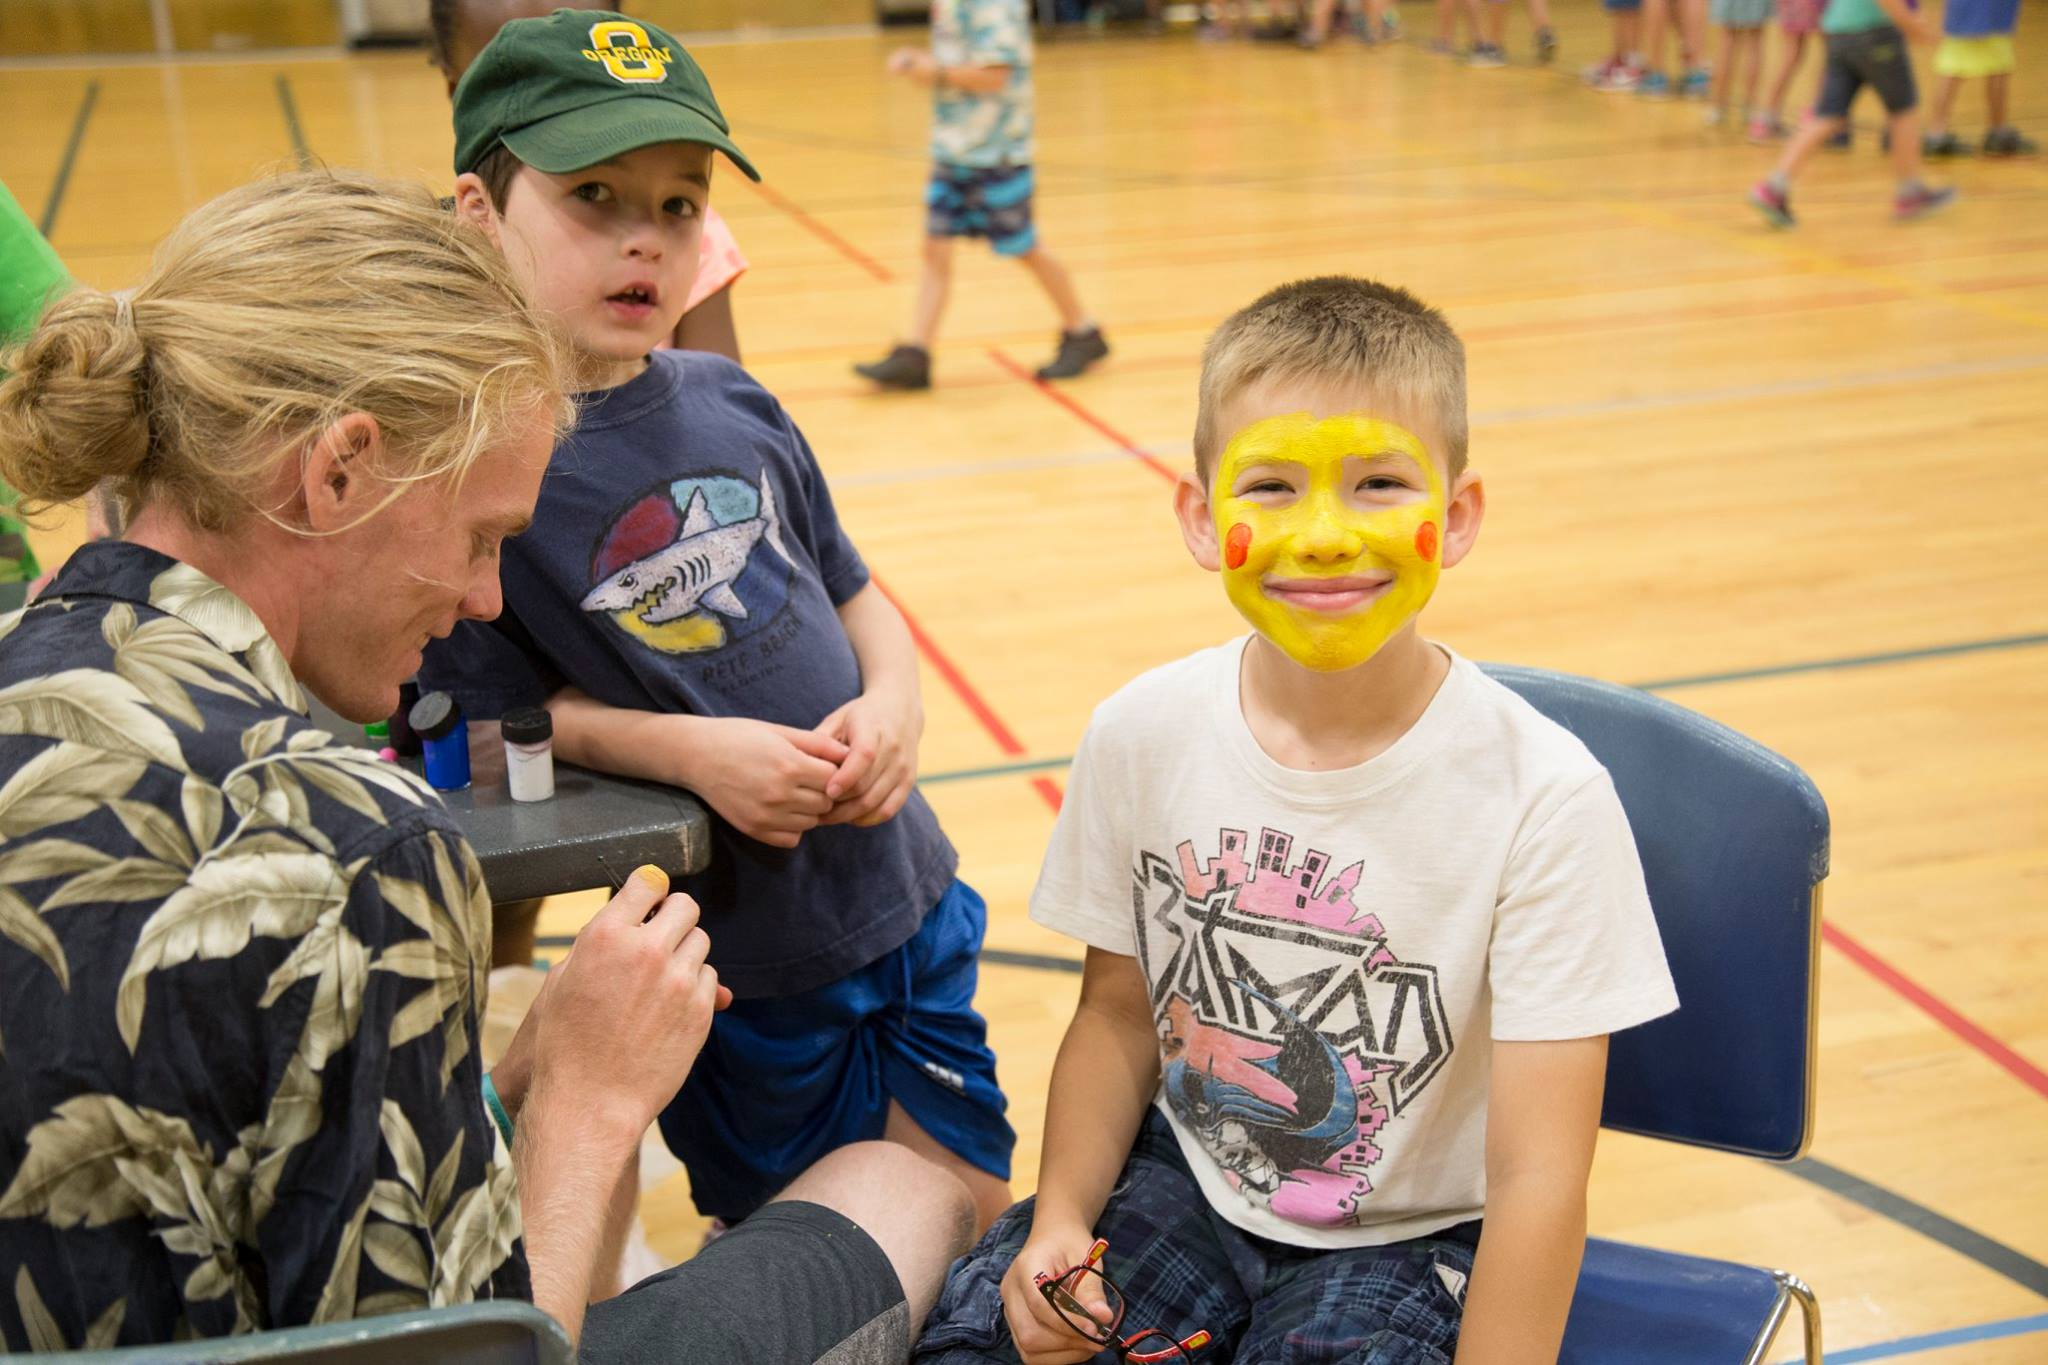 Two children get their faces painted.